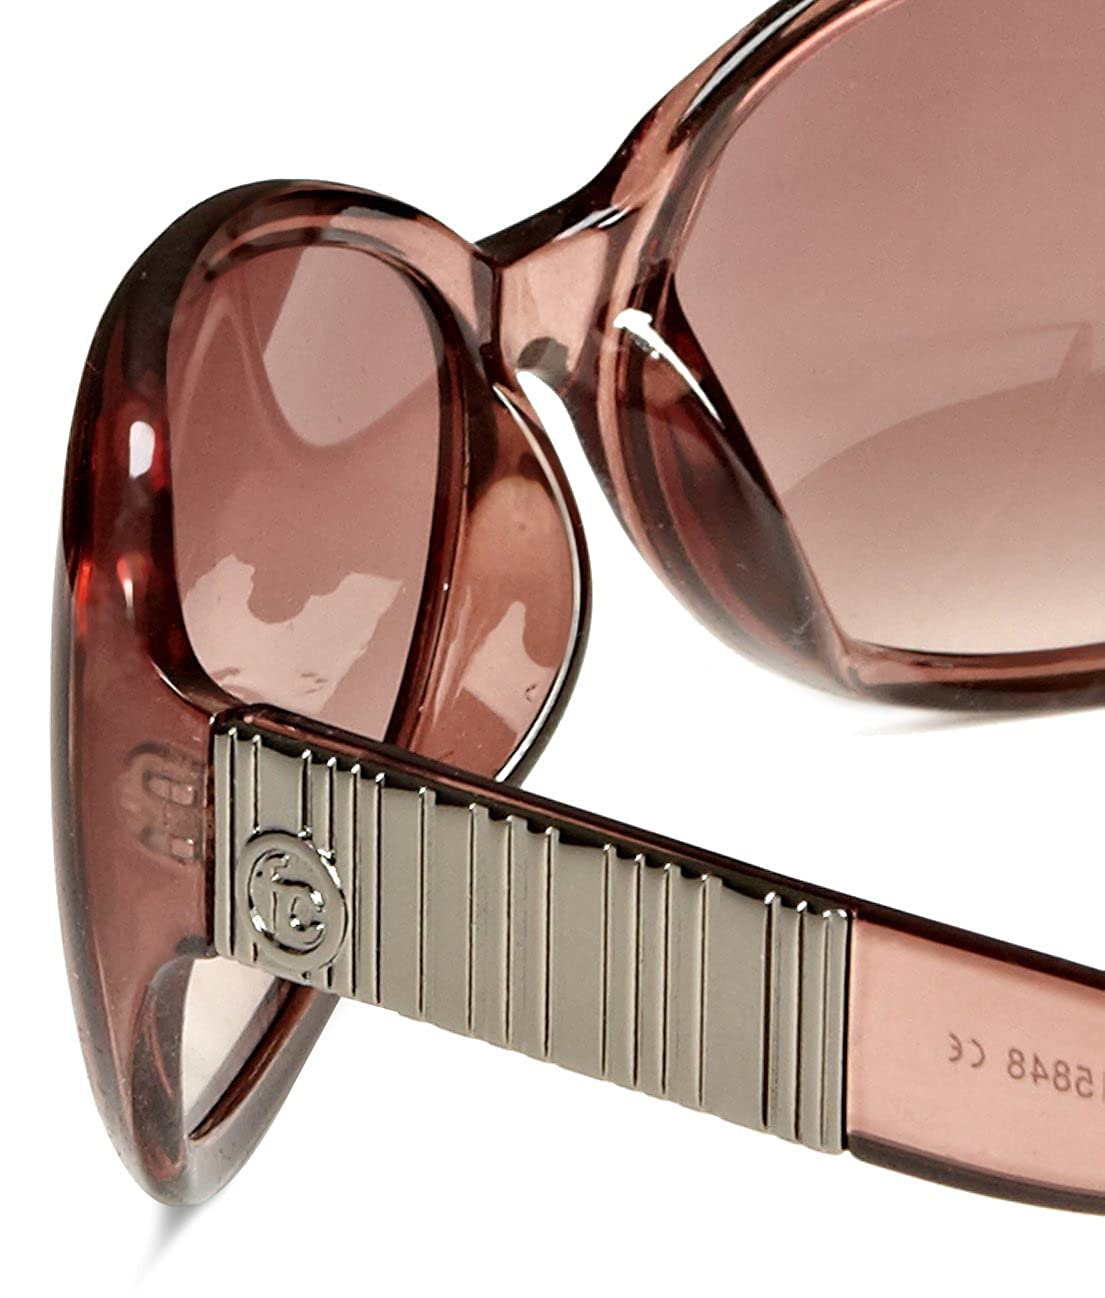 2d13340ac8b2 French Connection Women s FCU223 Sunglasses Brown Frame with Brown Lens  FCU223 One Size  Amazon.co.uk  Clothing